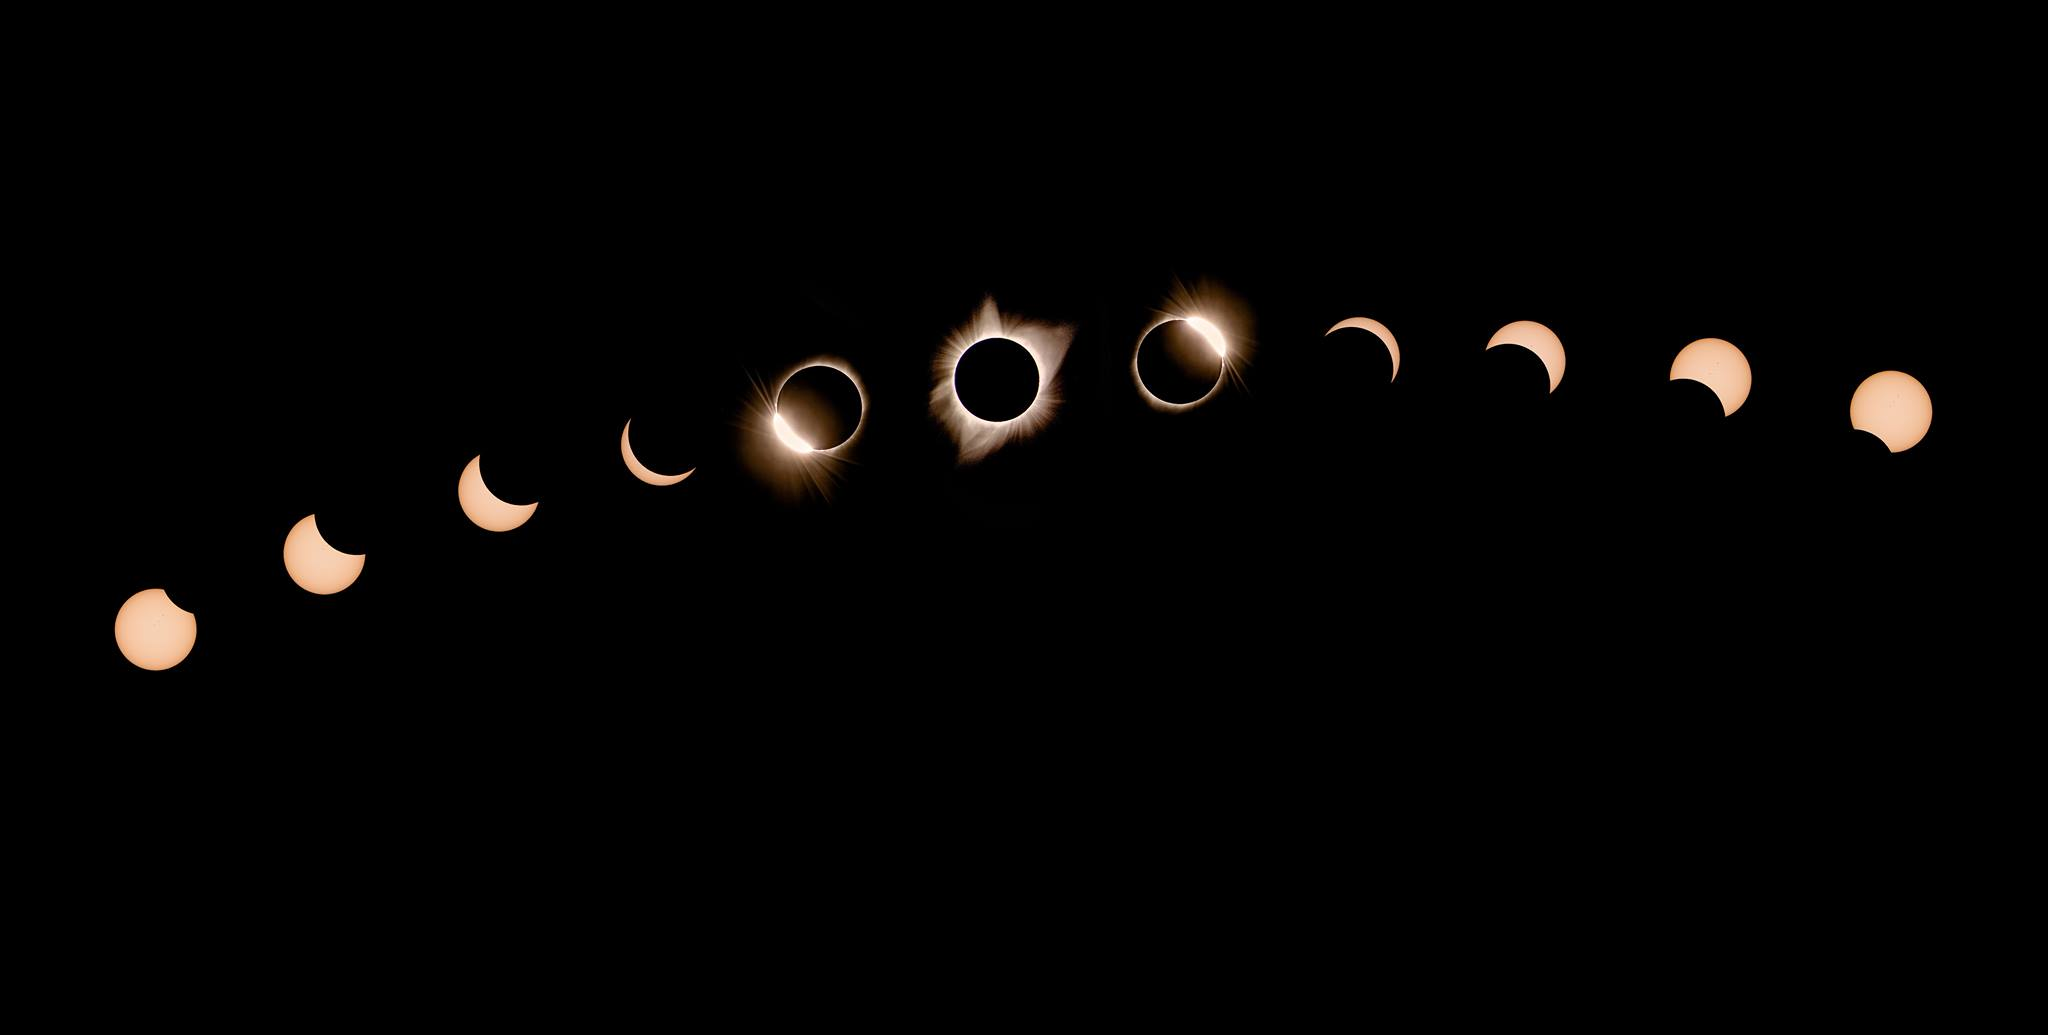 Copy of Total Eclipse - by Grant Collier